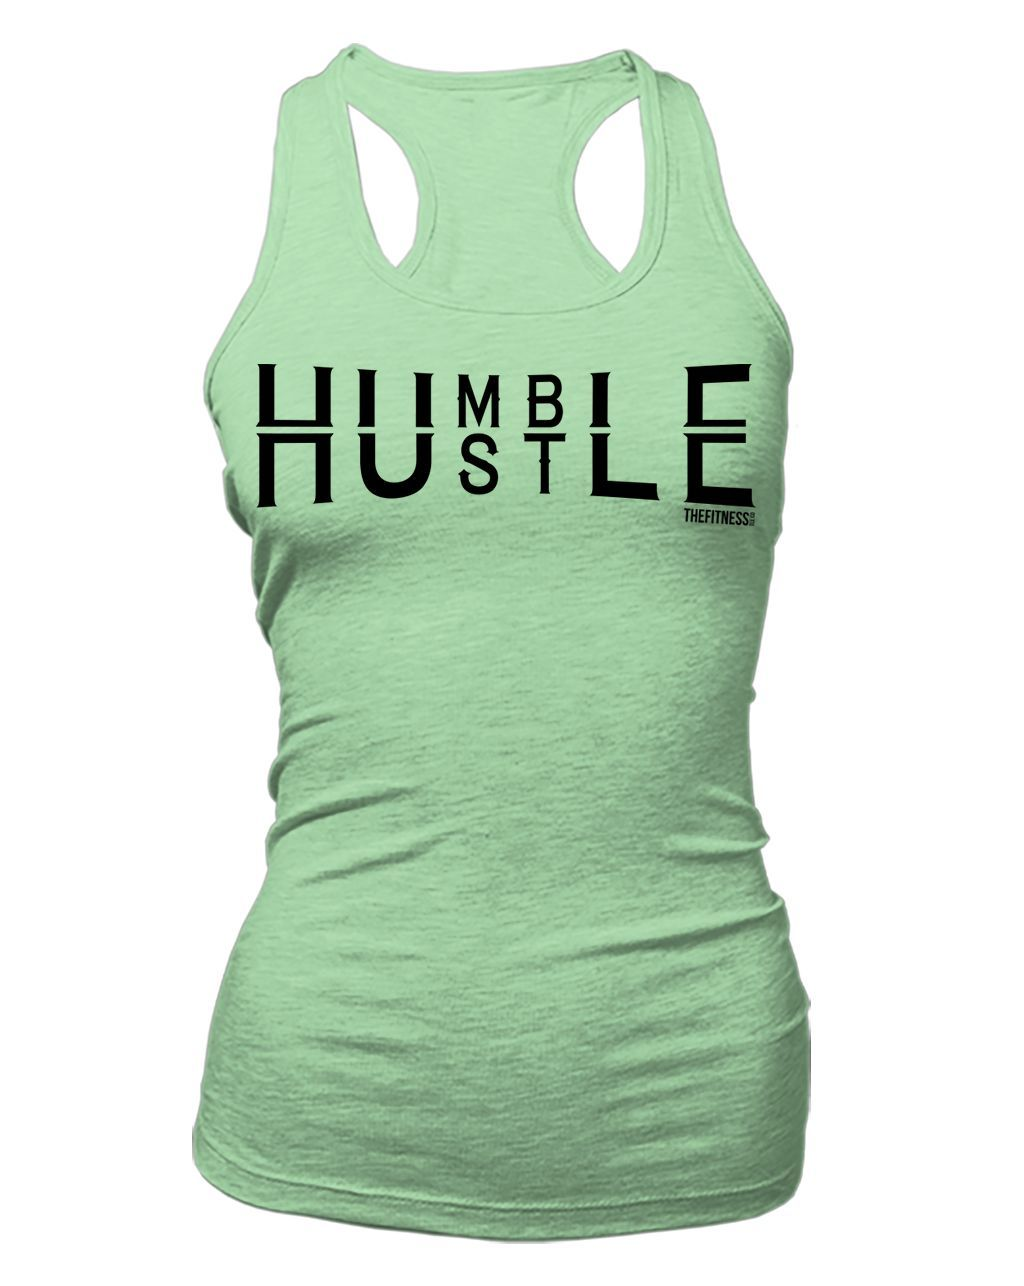 Humble hustle - Fitted Racerback